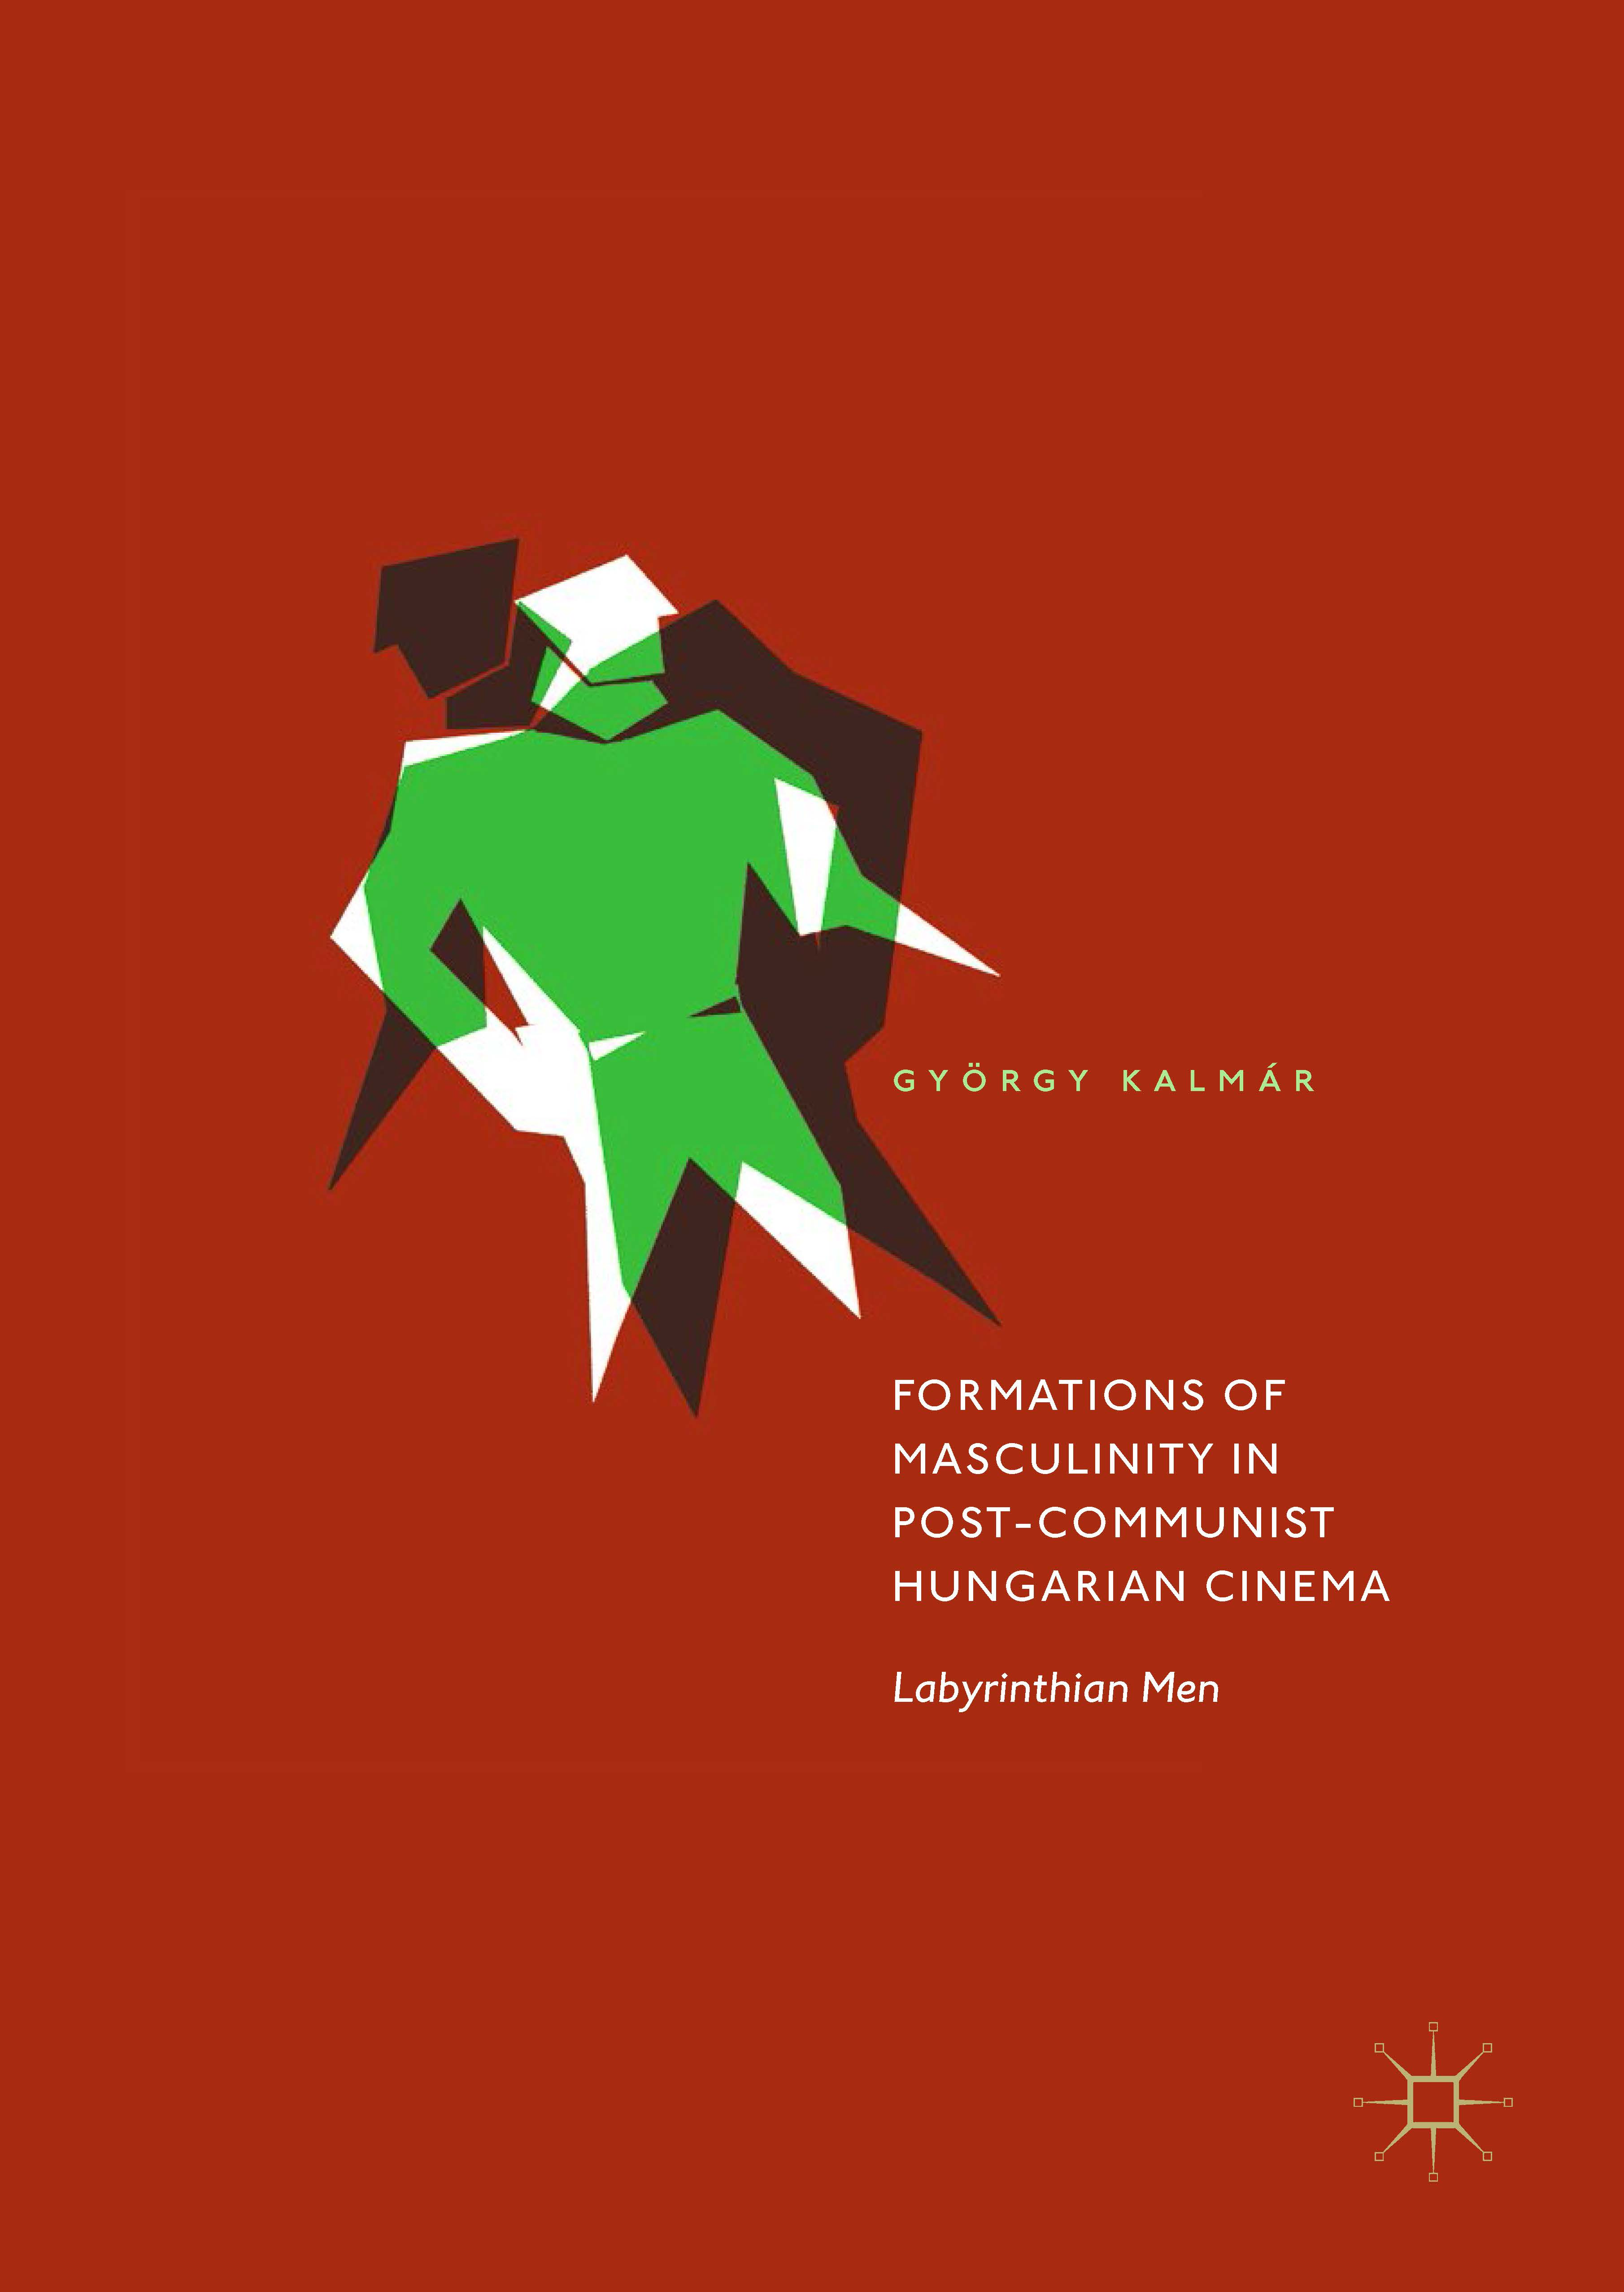 Formations of Masculinity in Post-Communist Hungarian Cinema